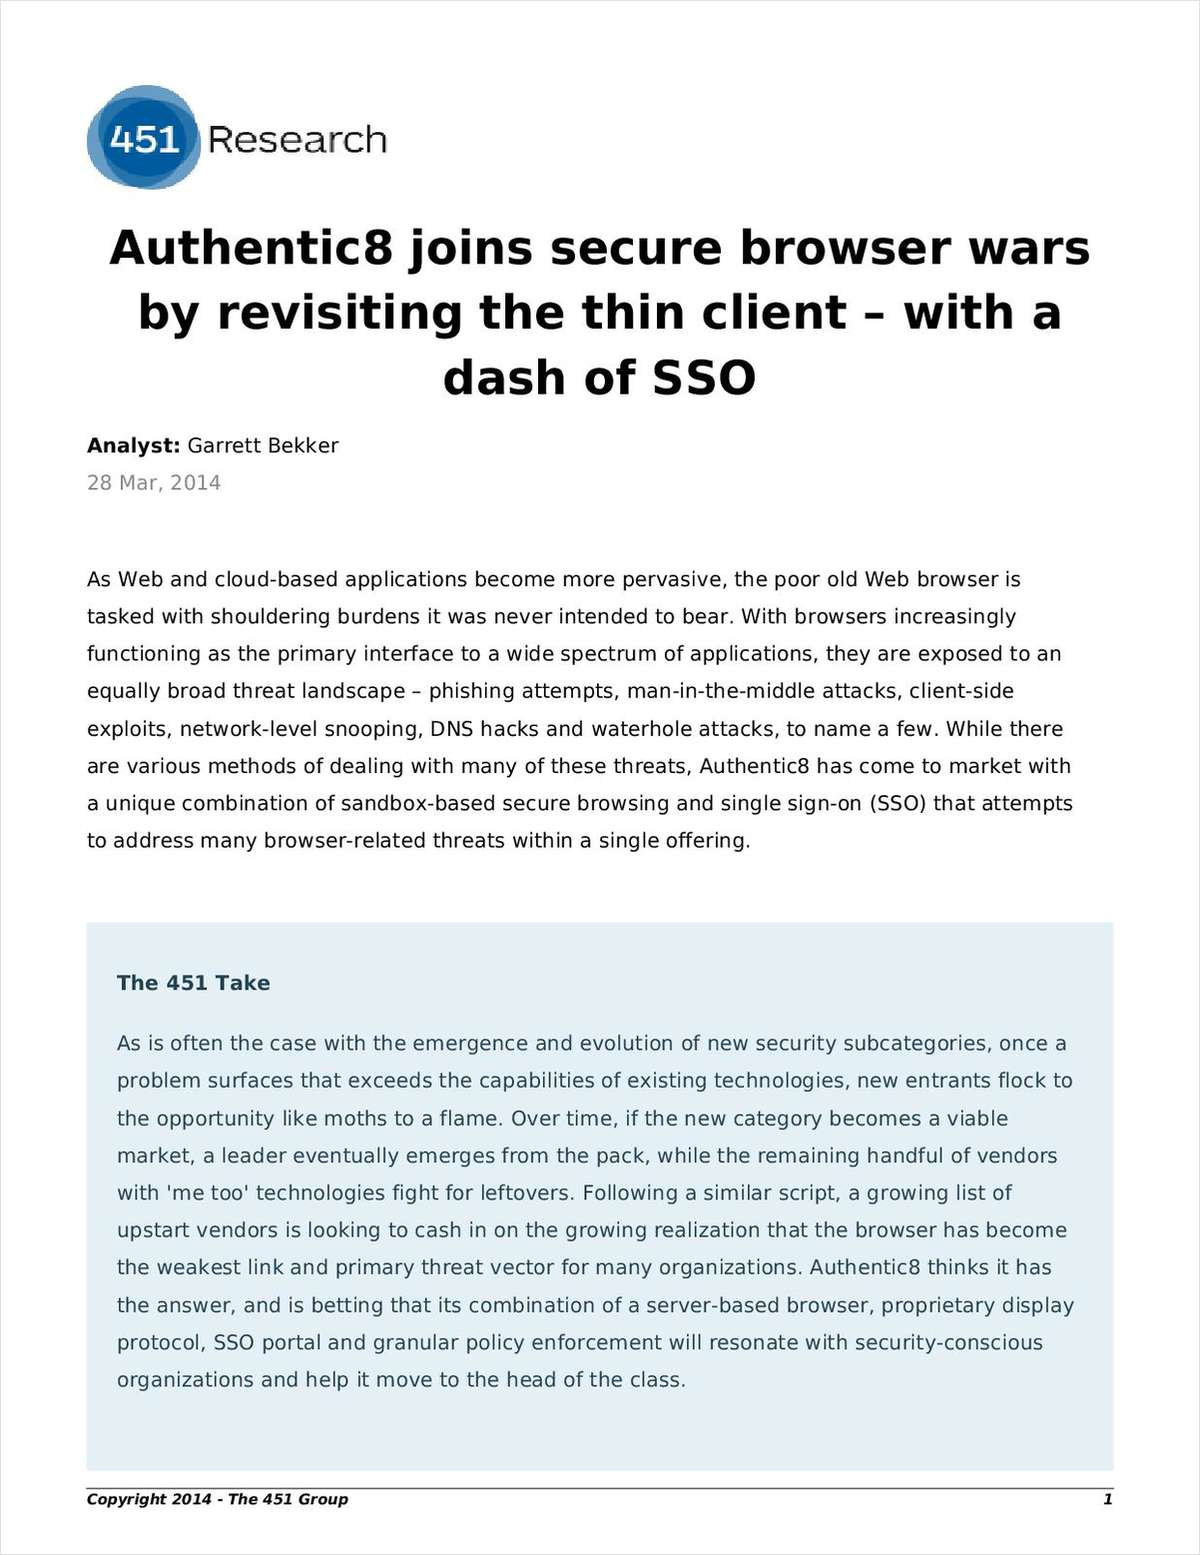 Authentic8 joins secure browser wars by revisiting the thin client -- with a dash of SSO (451 Research Impact Report)